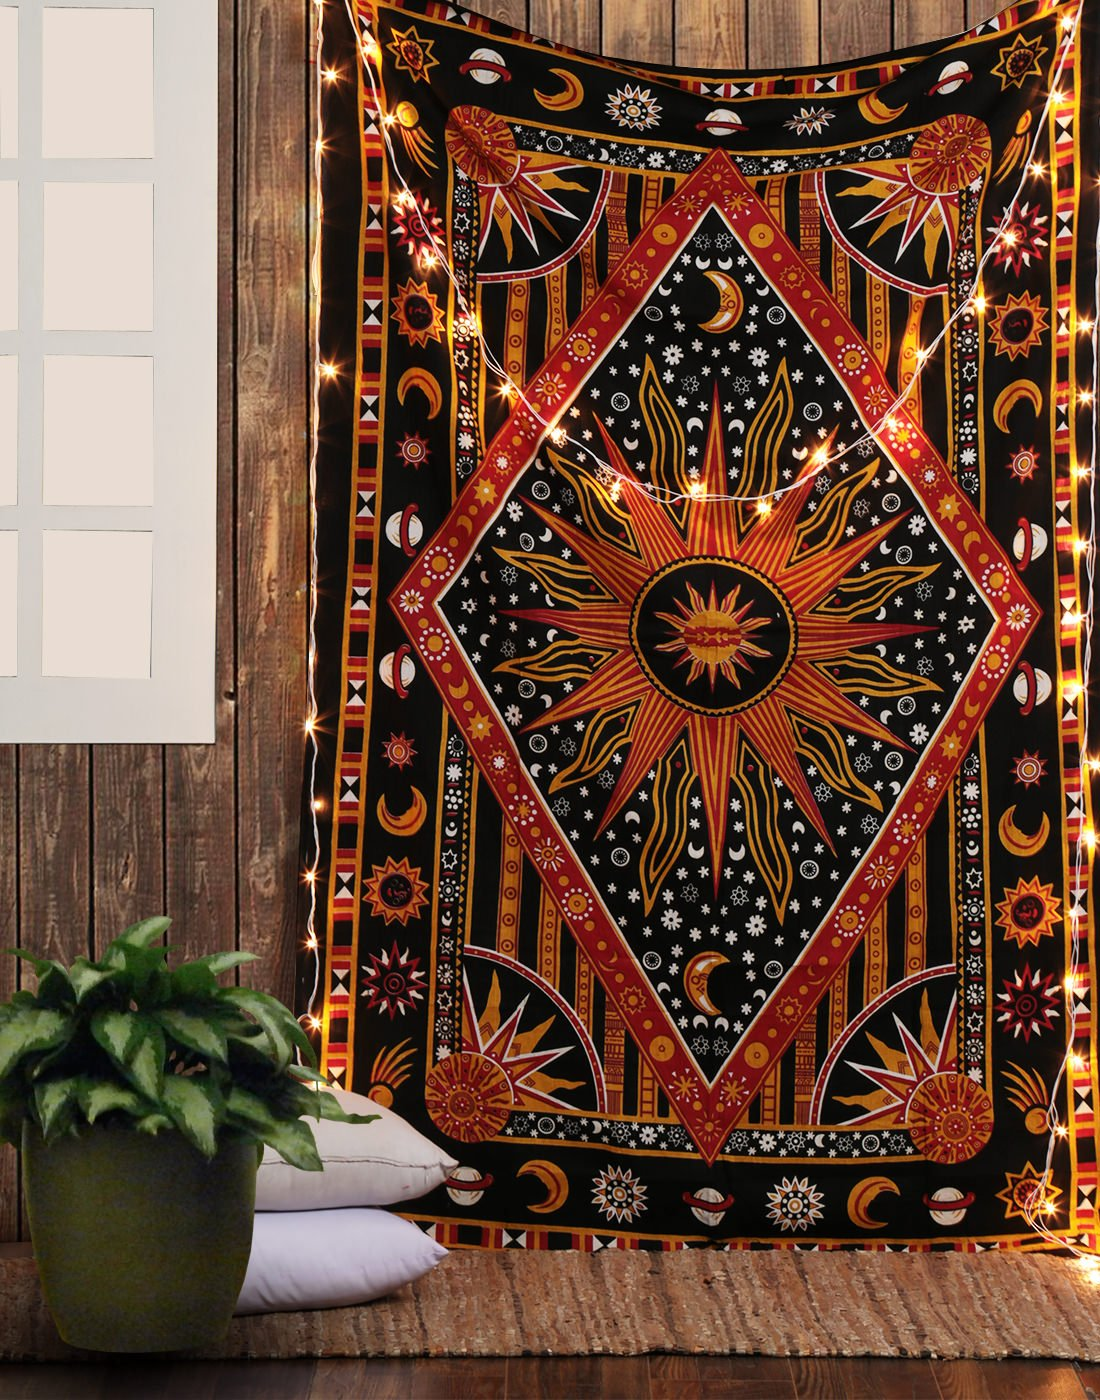 Celestial Sun Moon Stars Planet Tapestry Indian Hippie Wall Hanging Bohemian Bedspread Mandala Cotton Dorm Decor Beach blanket Rajrang WHG08237